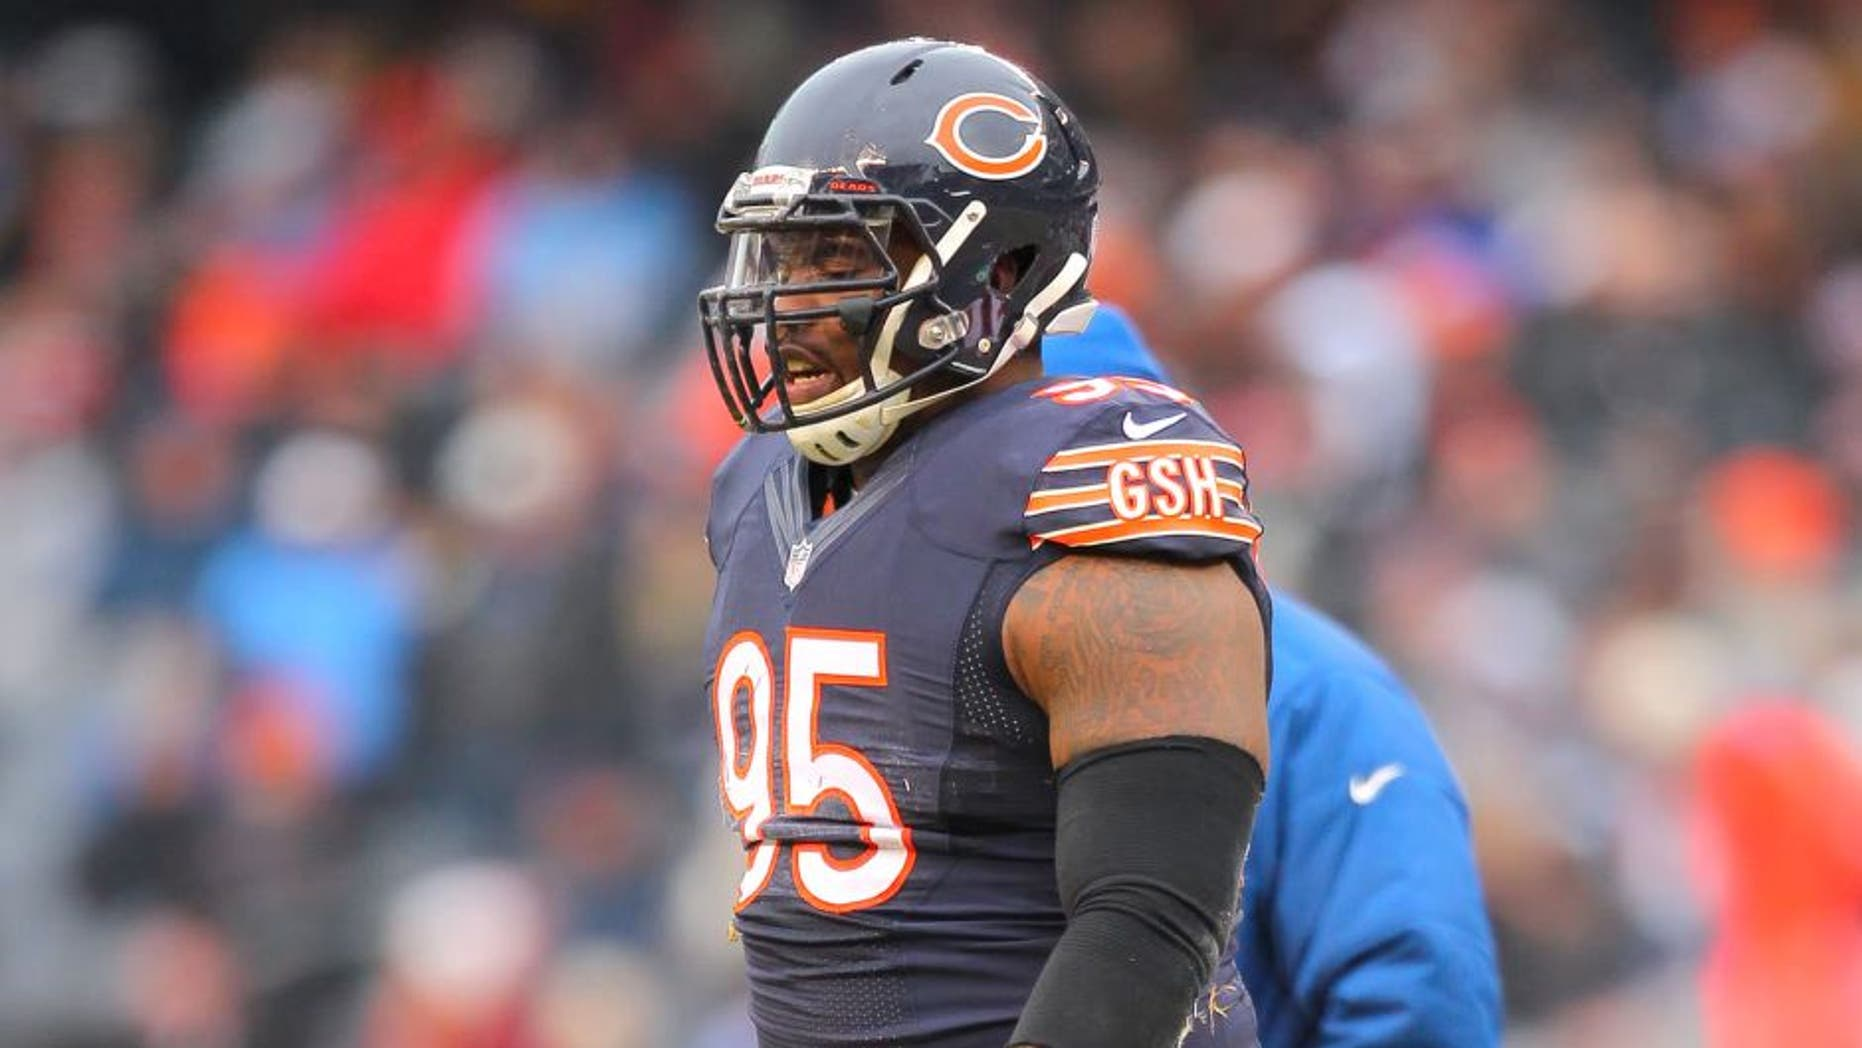 Dec 21, 2014; Chicago, IL, USA; Chicago Bears defensive tackle Ego Ferguson (95) walks off the field after an injury during the second half against the Detroit Lions at Soldier Field. Detroit won 20-14. Mandatory Credit: Dennis Wierzbicki-USA TODAY Sports